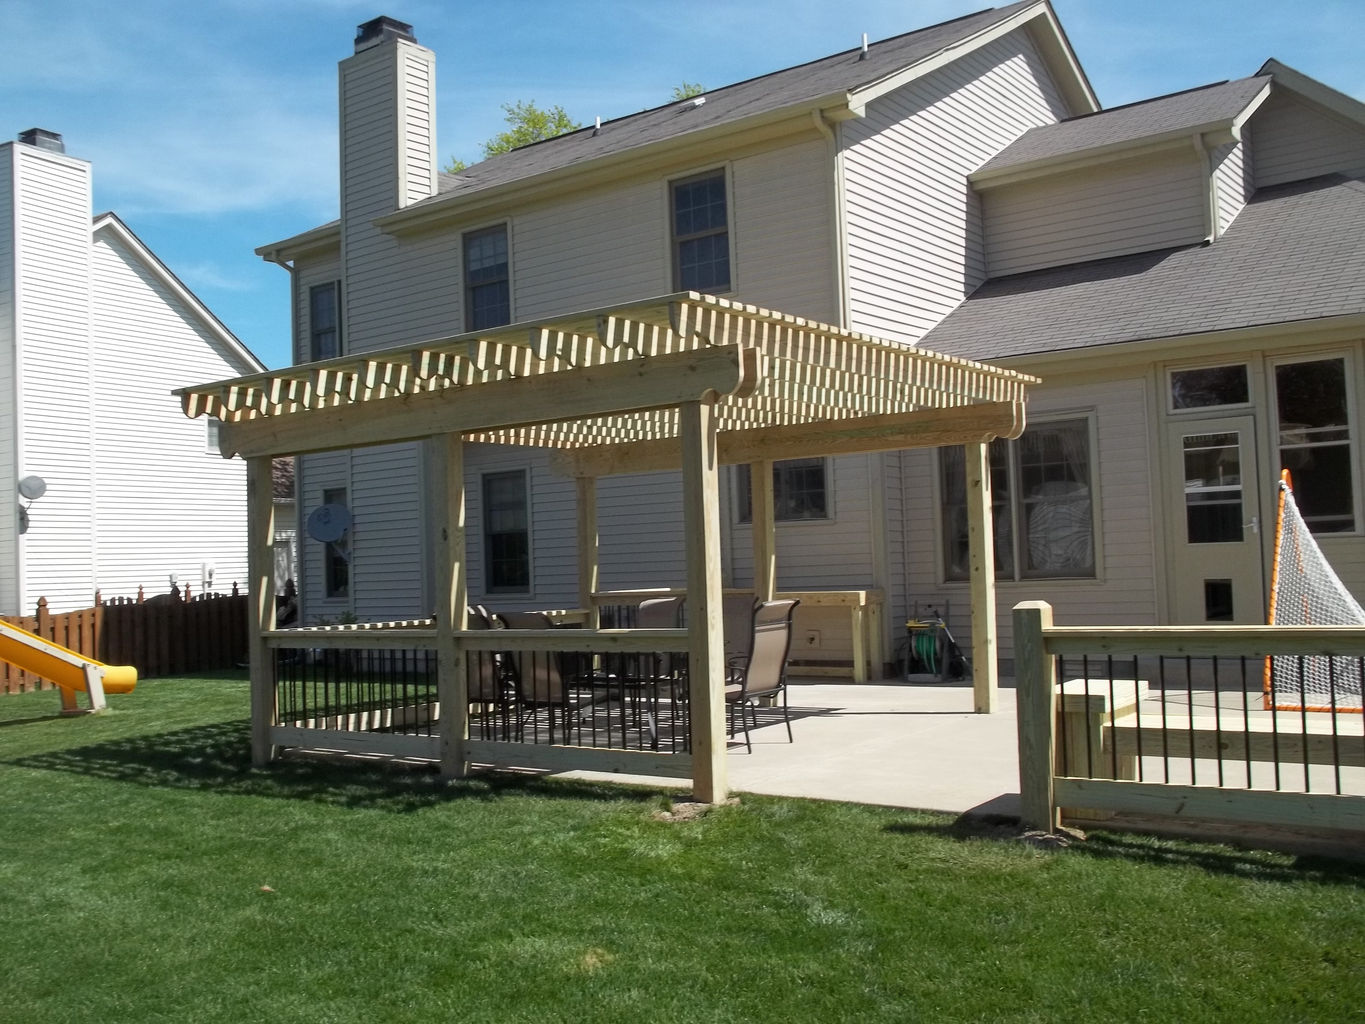 A Shade Pergola Over An Existing Concrete Patio In Carmel, IN.